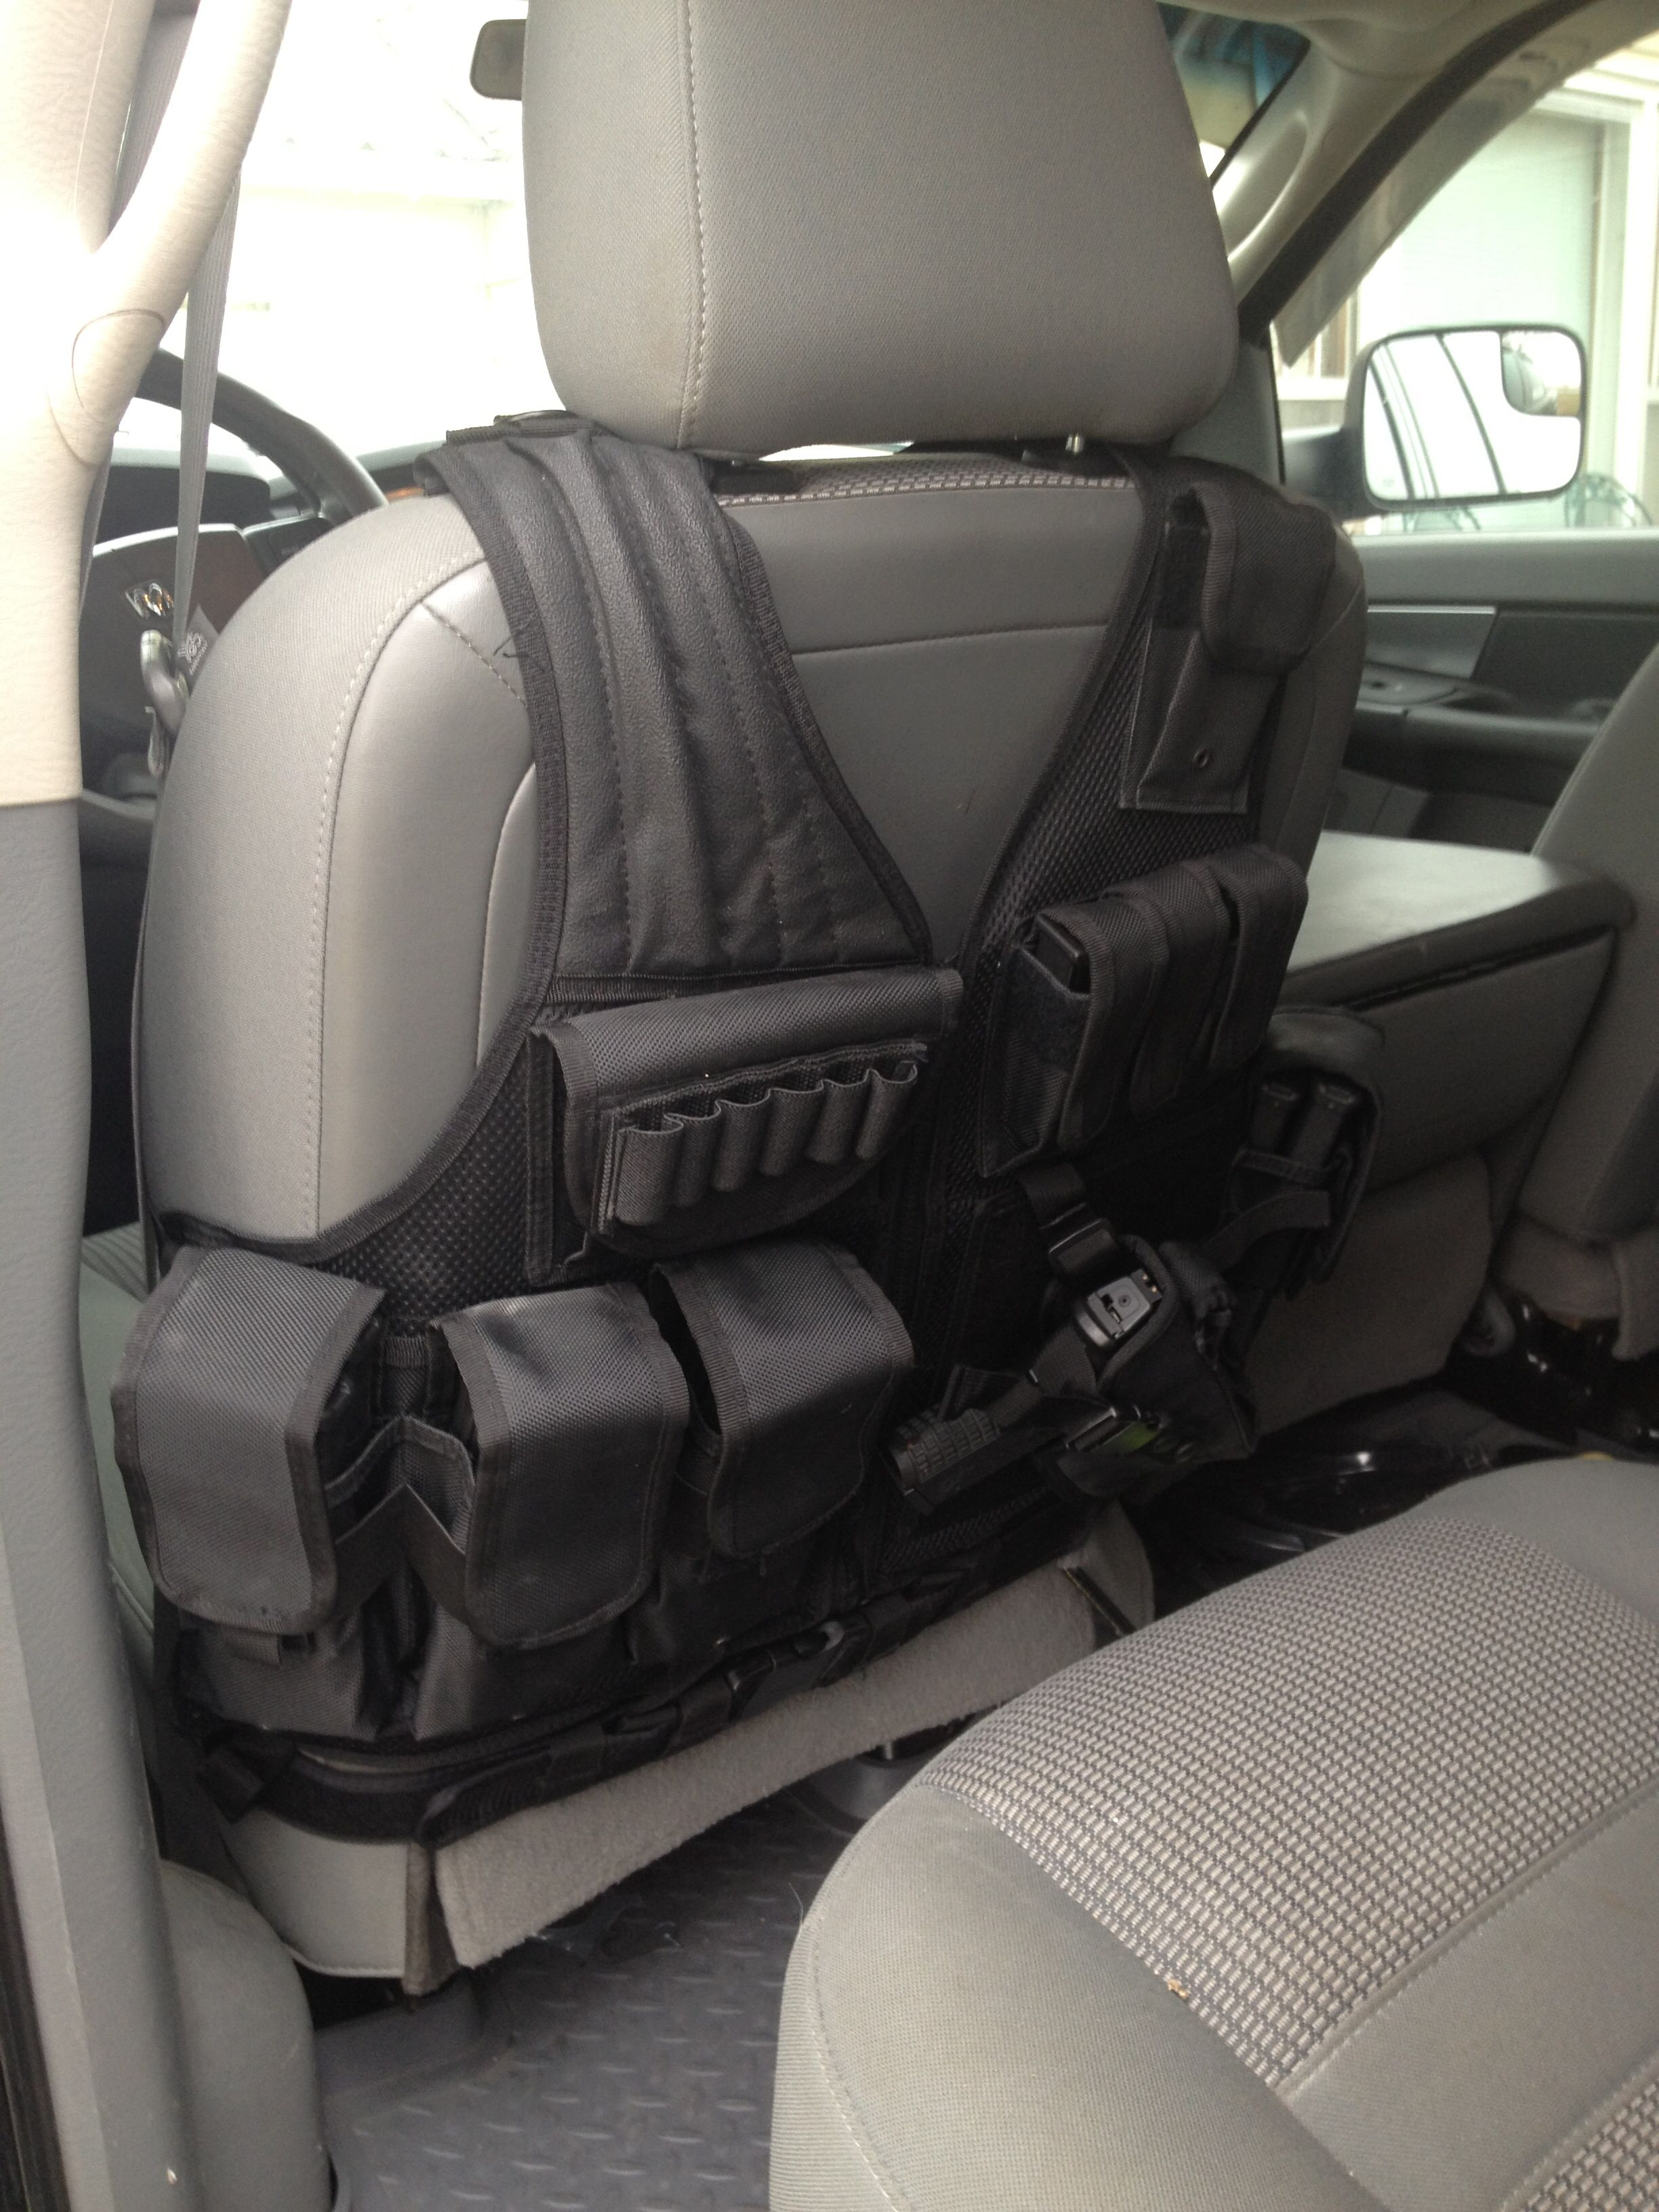 Tactical Vest Seat Covers Just A Cheap Tactical Vest